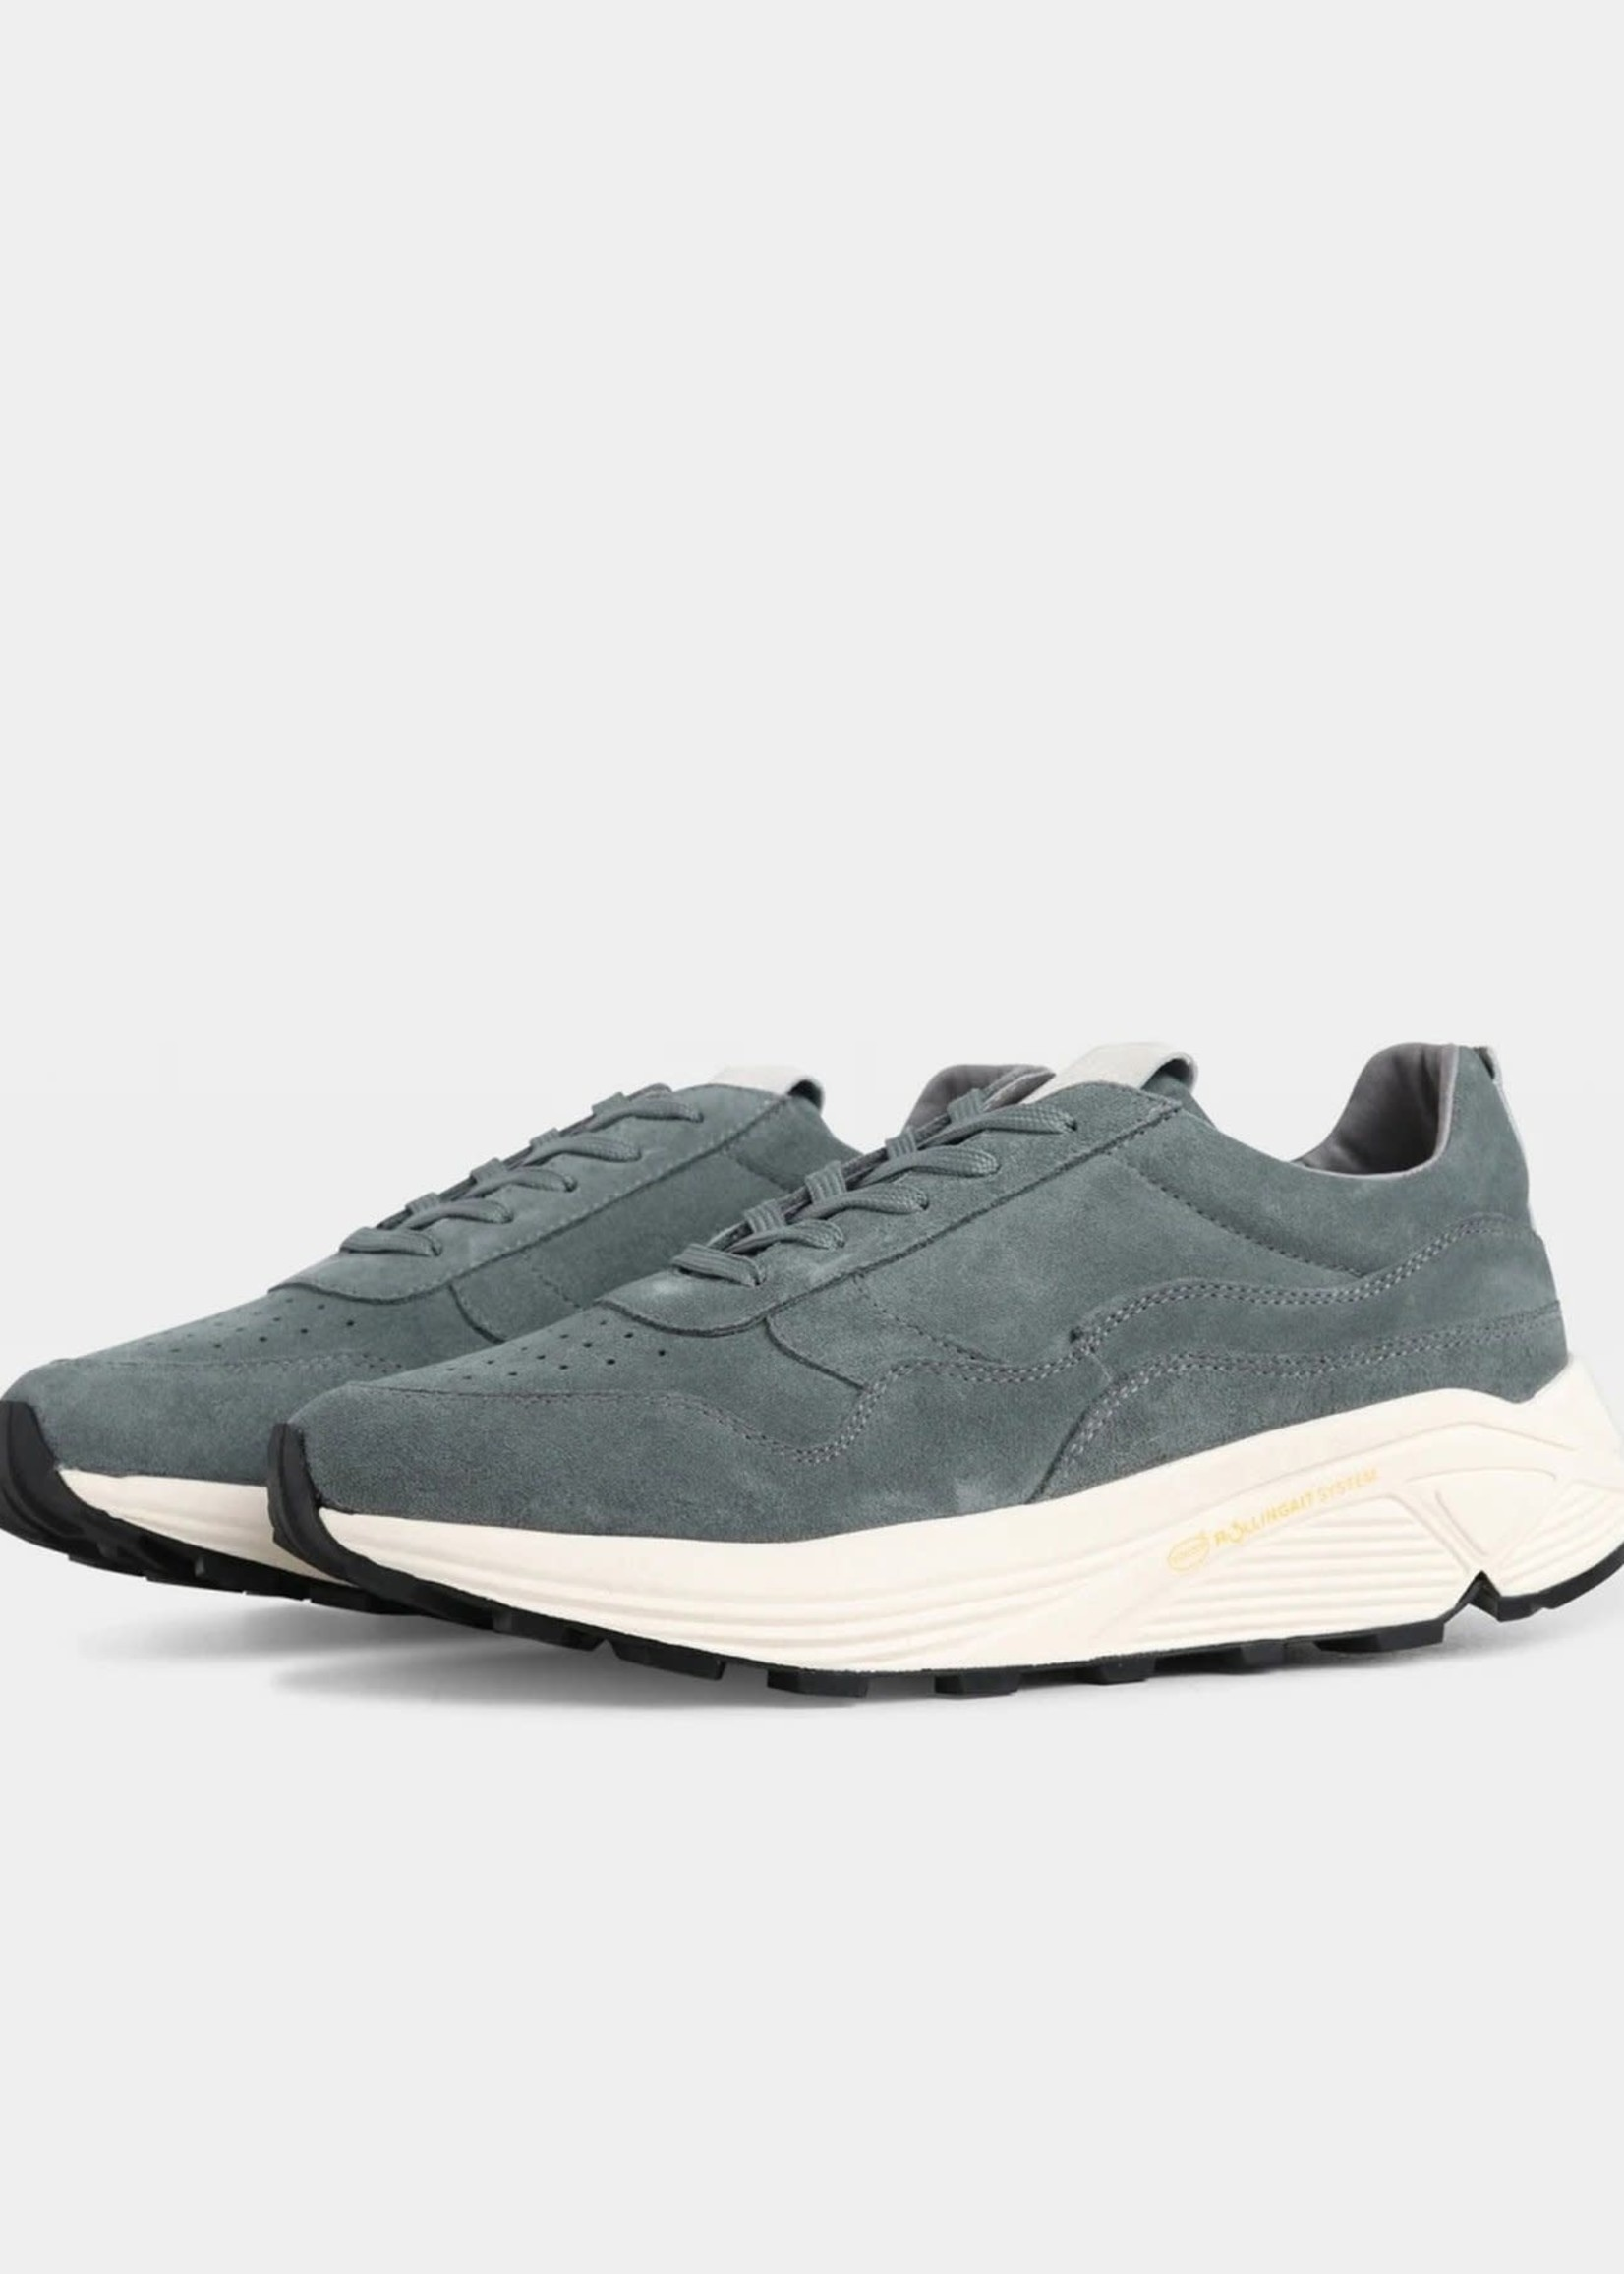 Garment Project Bailey Runner - Conifer Suede / Off White